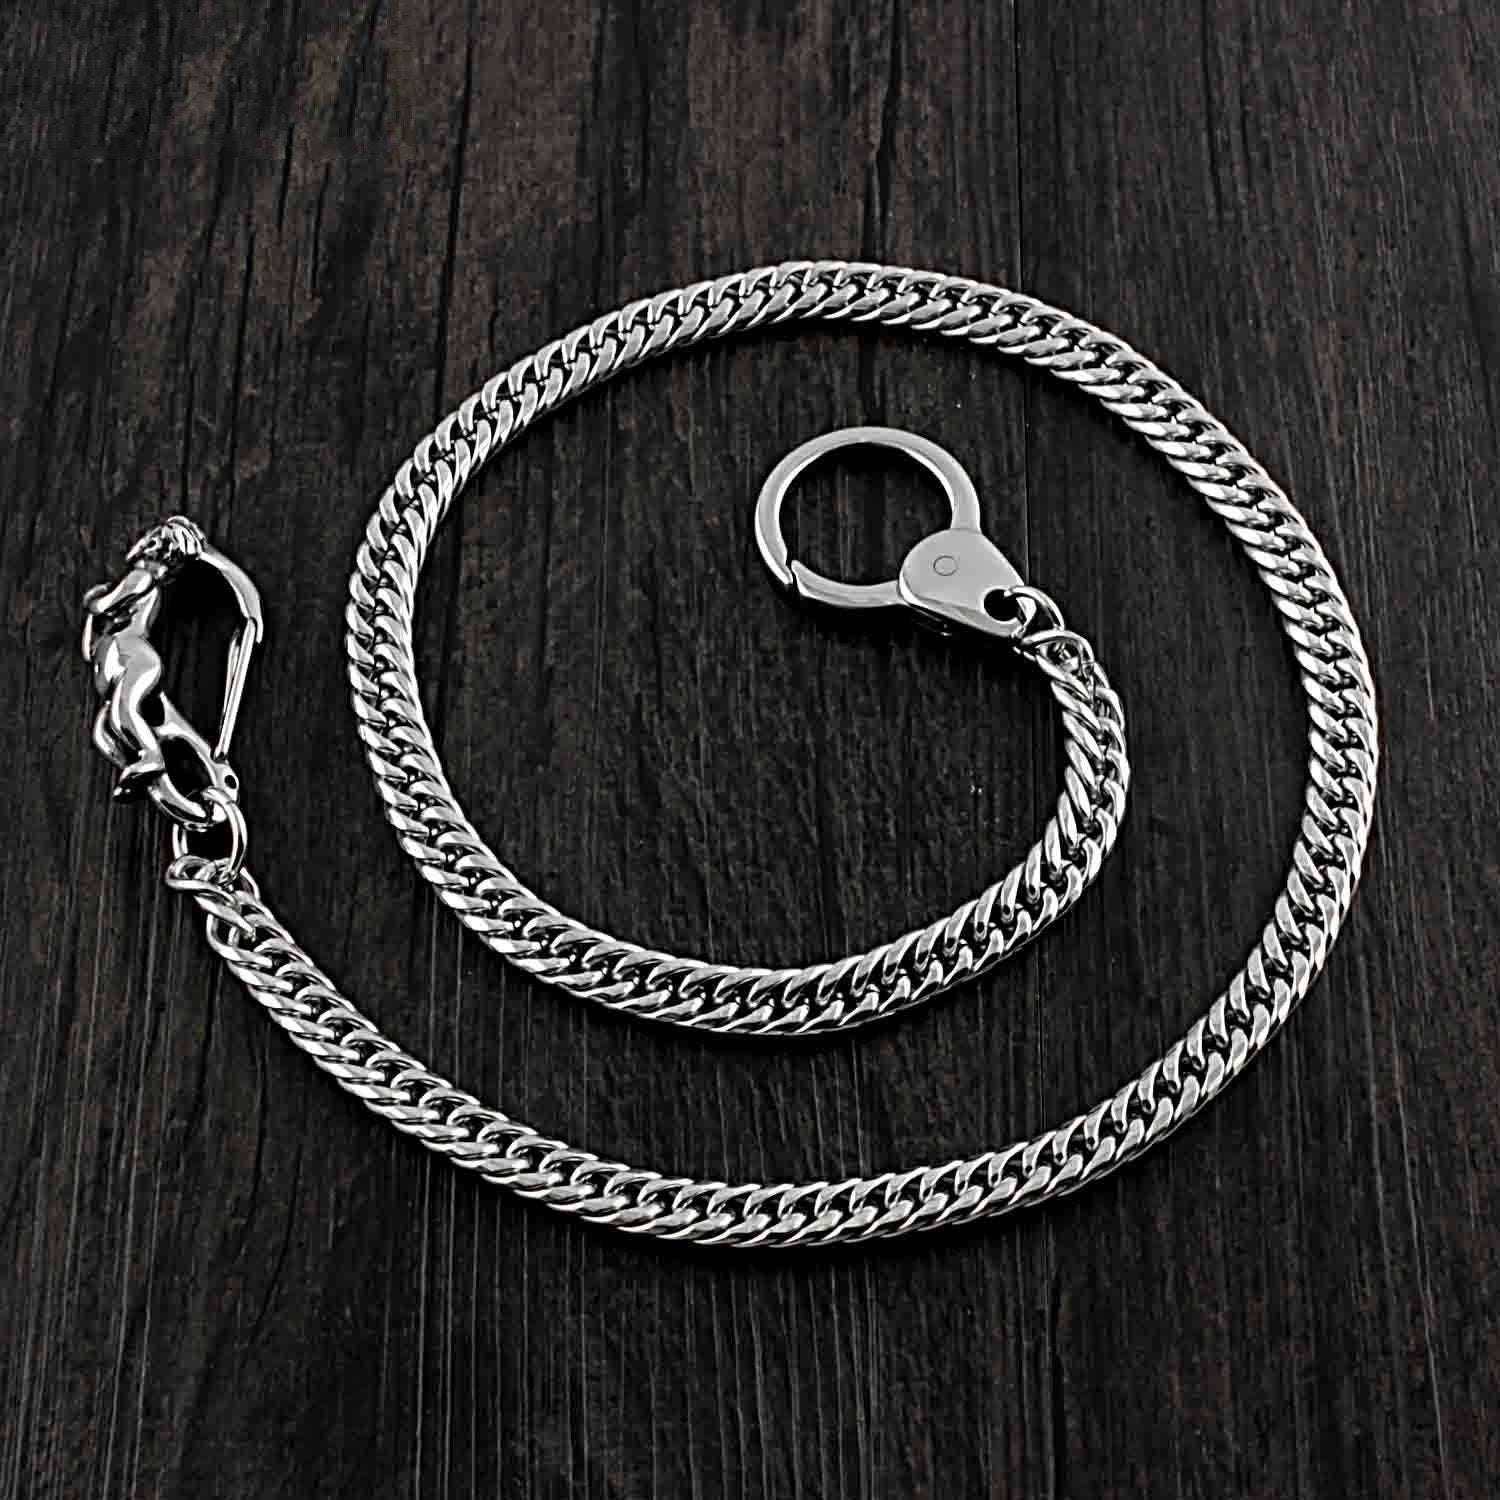 SOLID STAINLESS STEEL BIKER Cool WALLET CHAIN LONG PANTS CHAIN jeans chain jean chain FOR MEN